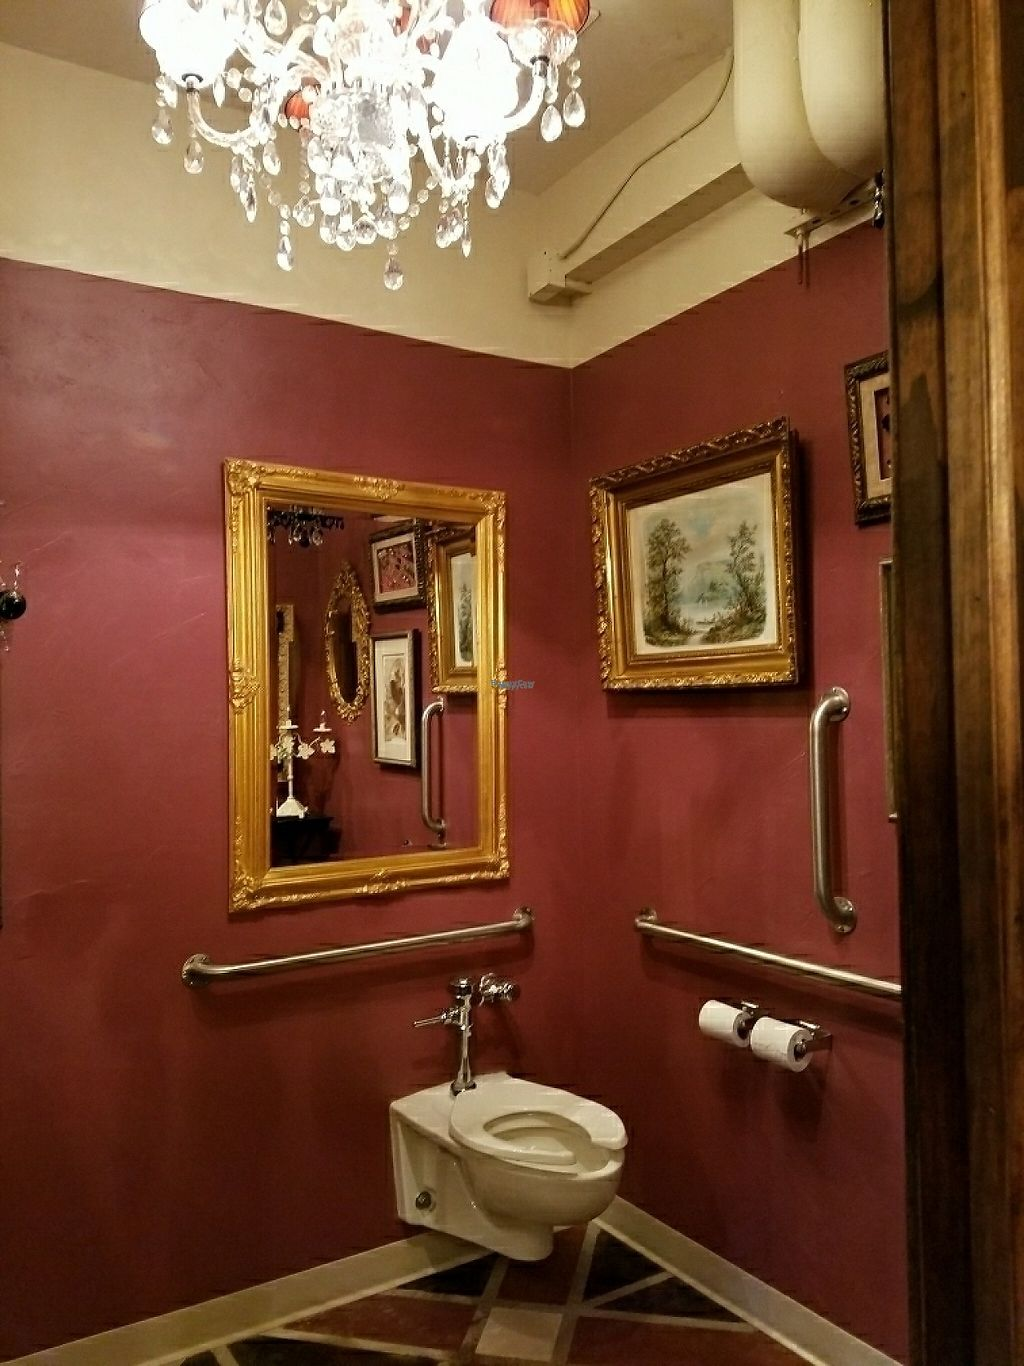 """Photo of Music Forest Cafe  by <a href=""""/members/profile/EverydayTastiness"""">EverydayTastiness</a> <br/>women's bathroom  <br/> February 24, 2017  - <a href='/contact/abuse/image/87417/230087'>Report</a>"""